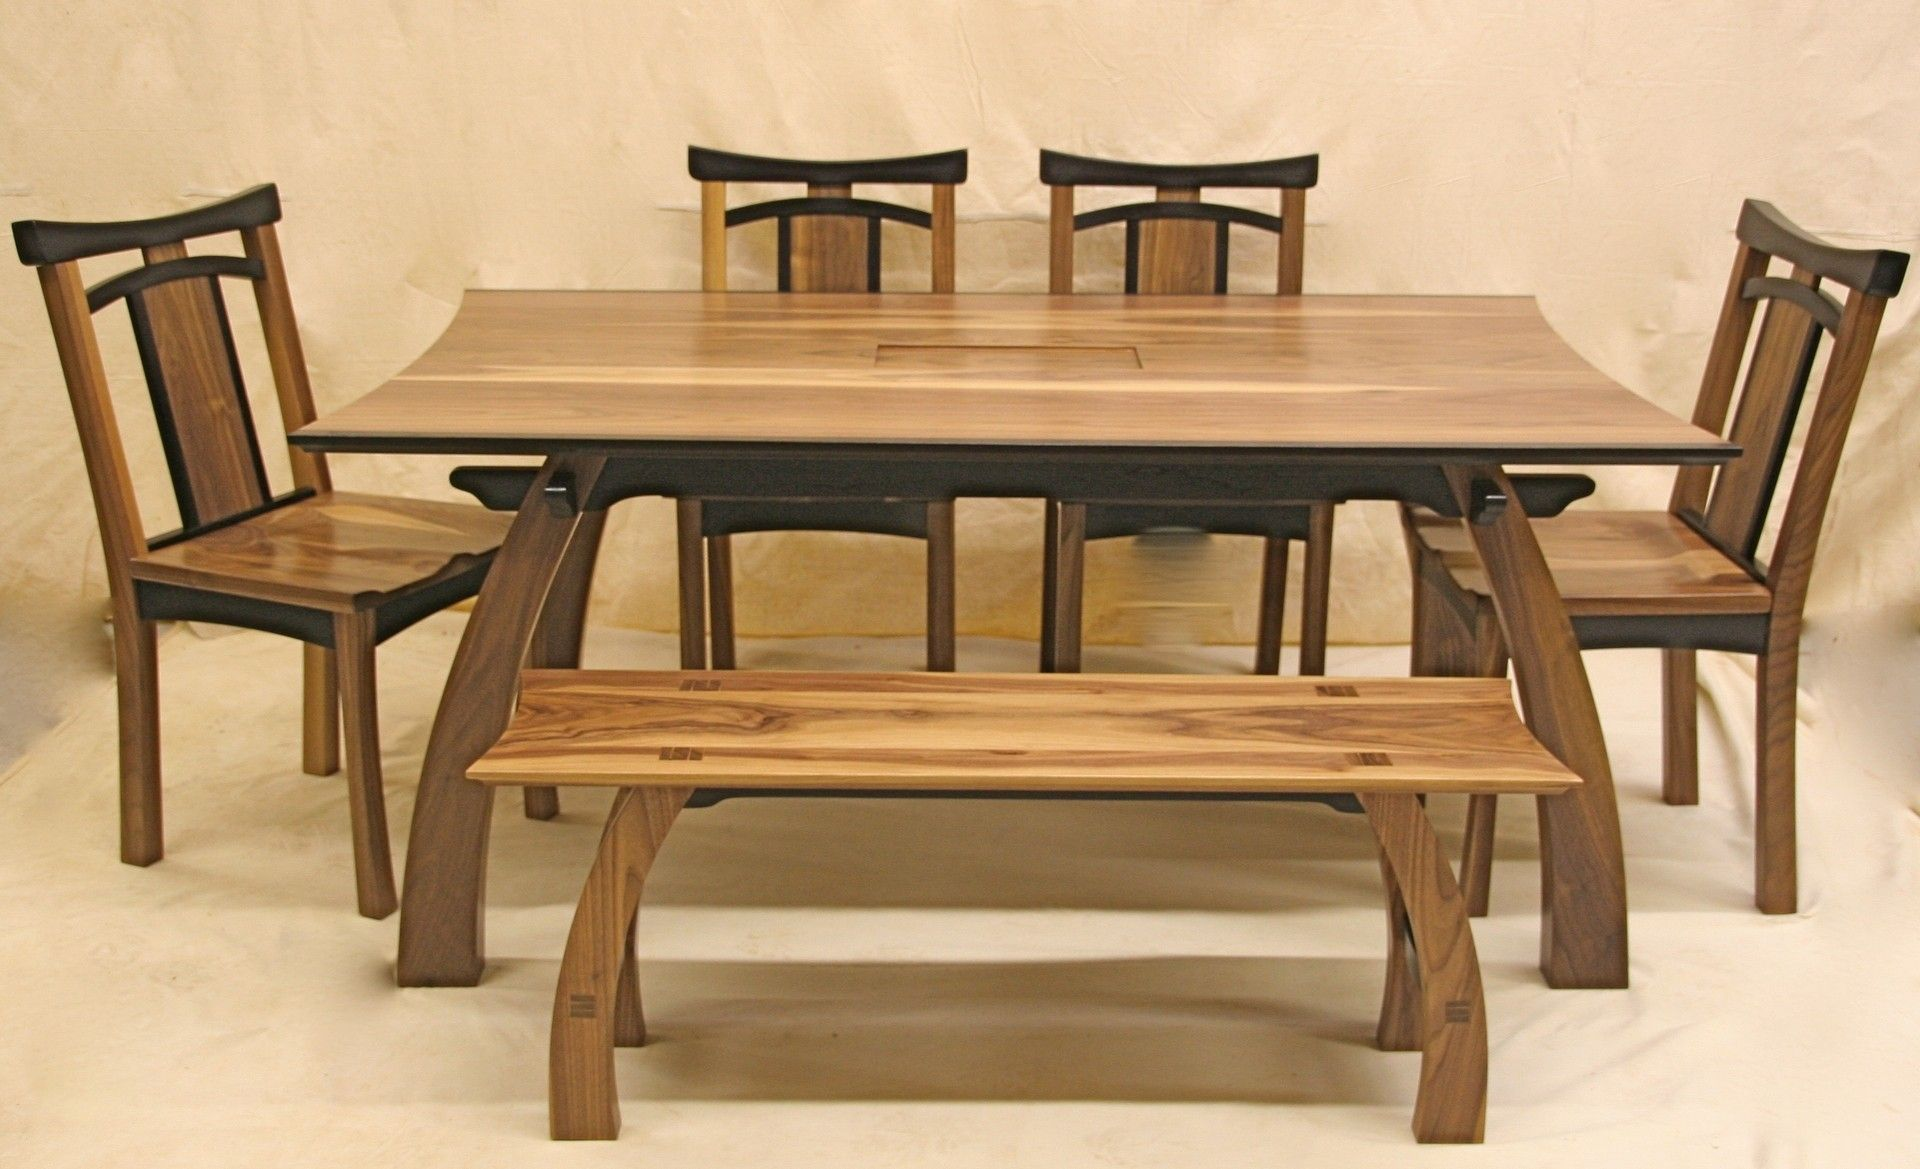 dining room furniture charming asian. Beautiful Dining Rustic Japanese Low Teak Wood Dining Table Great Room Design Inspirations  With Furniture Classy Rectangular Wooden Chairs Added Single Benches As Decorate  For Charming Asian U